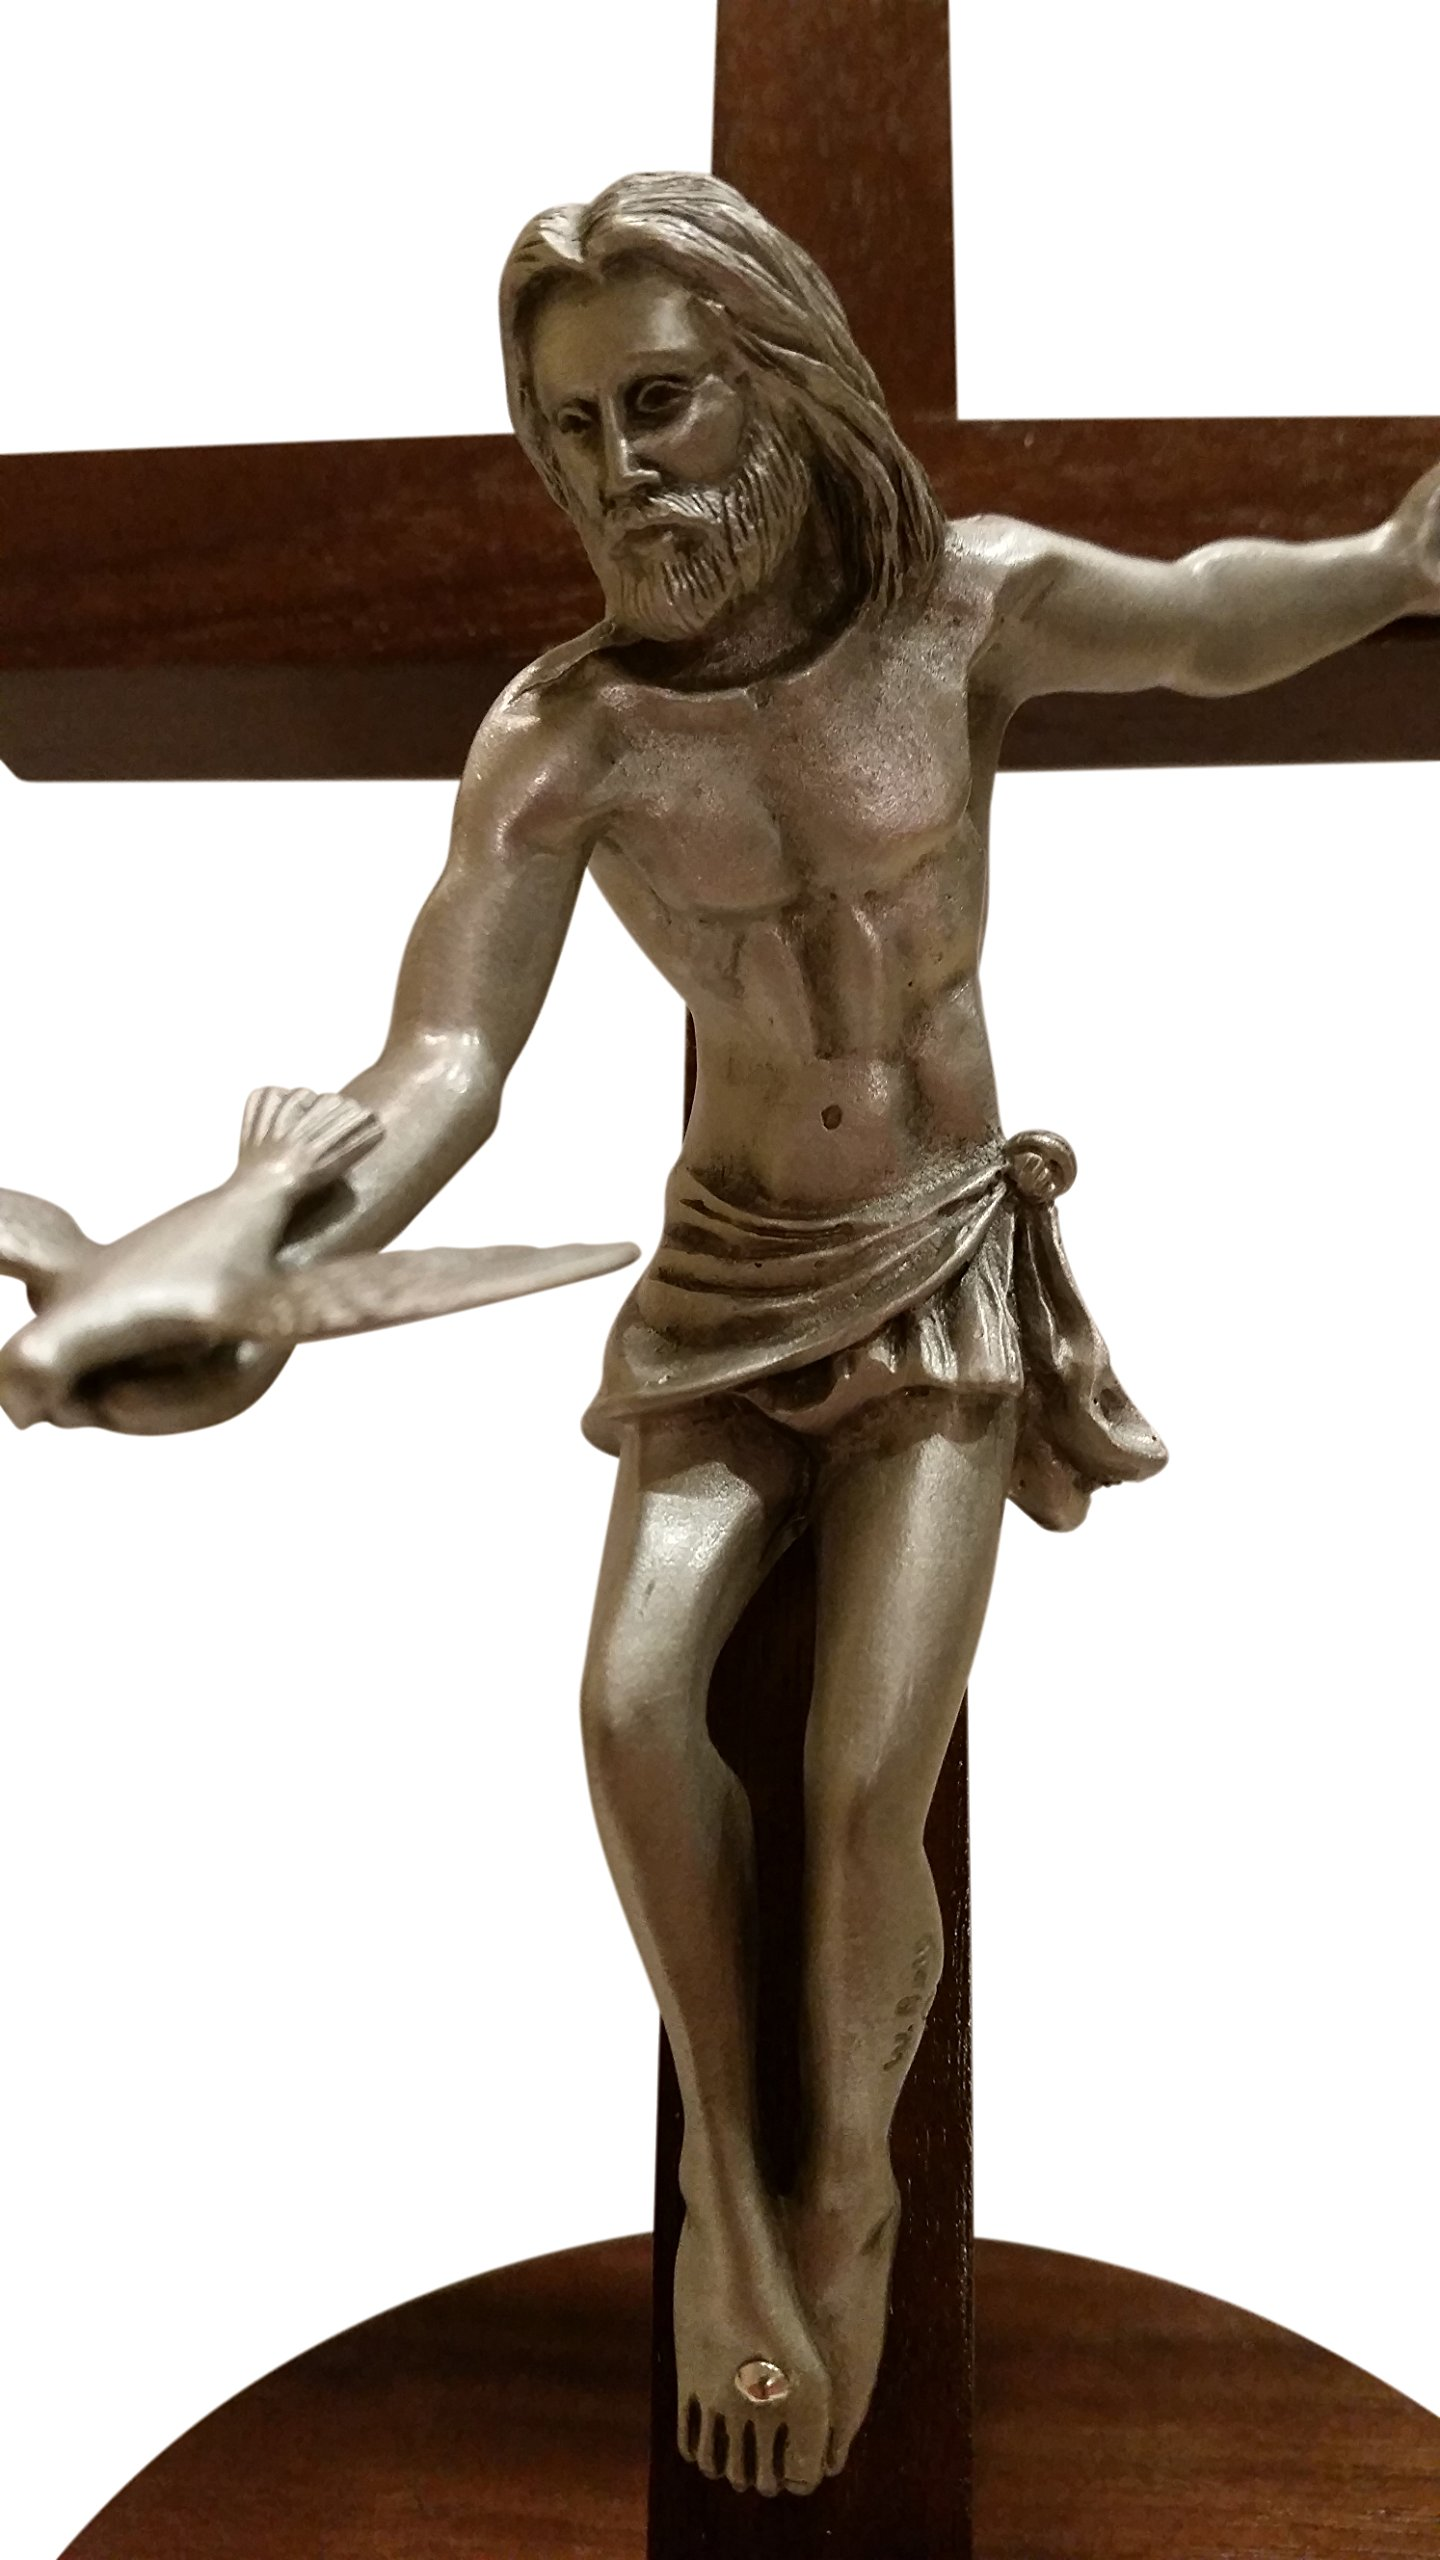 Inspire Nation Gift of the Spirit Walnut Wood Standing Wall Cross Crucifix with Removable Base for Hanging 8 inches by Inspire Nation (Image #9)